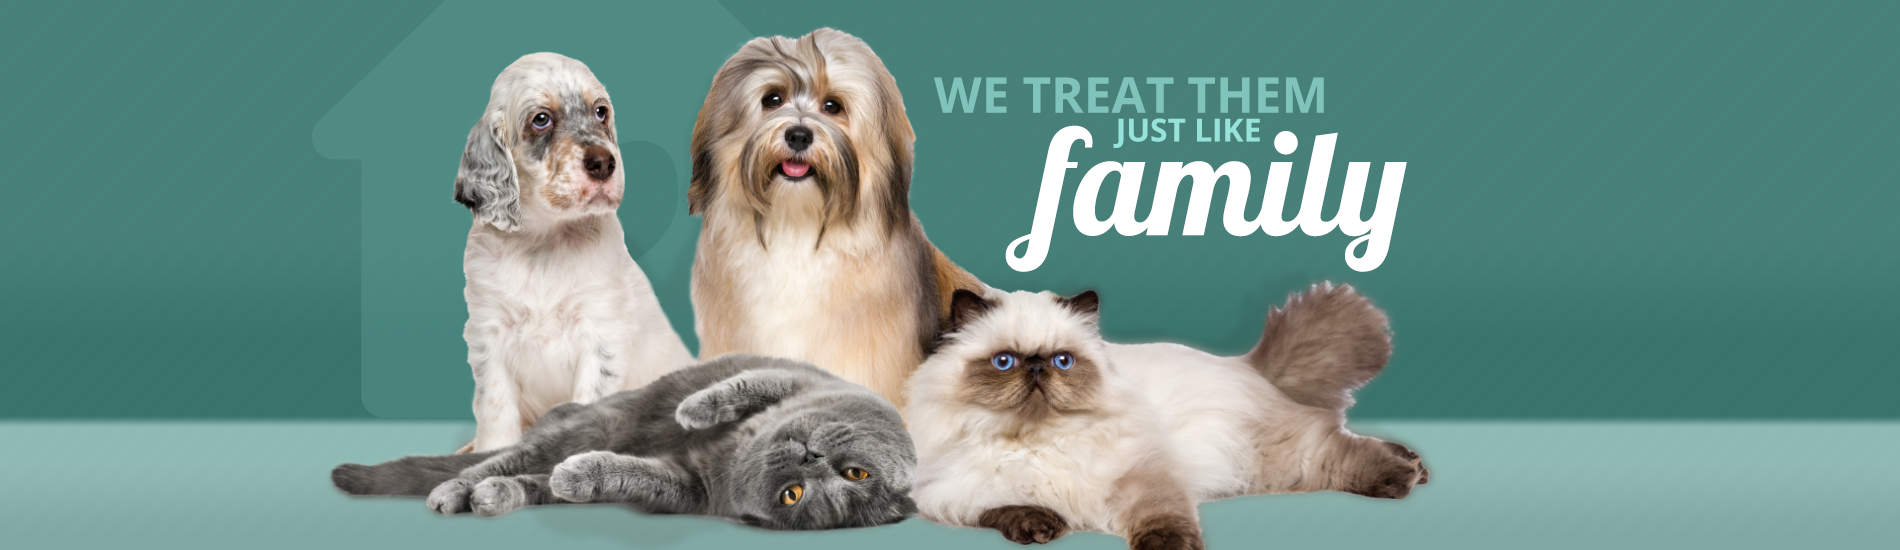 Calling All Paws | We Treat Them Just Like Family